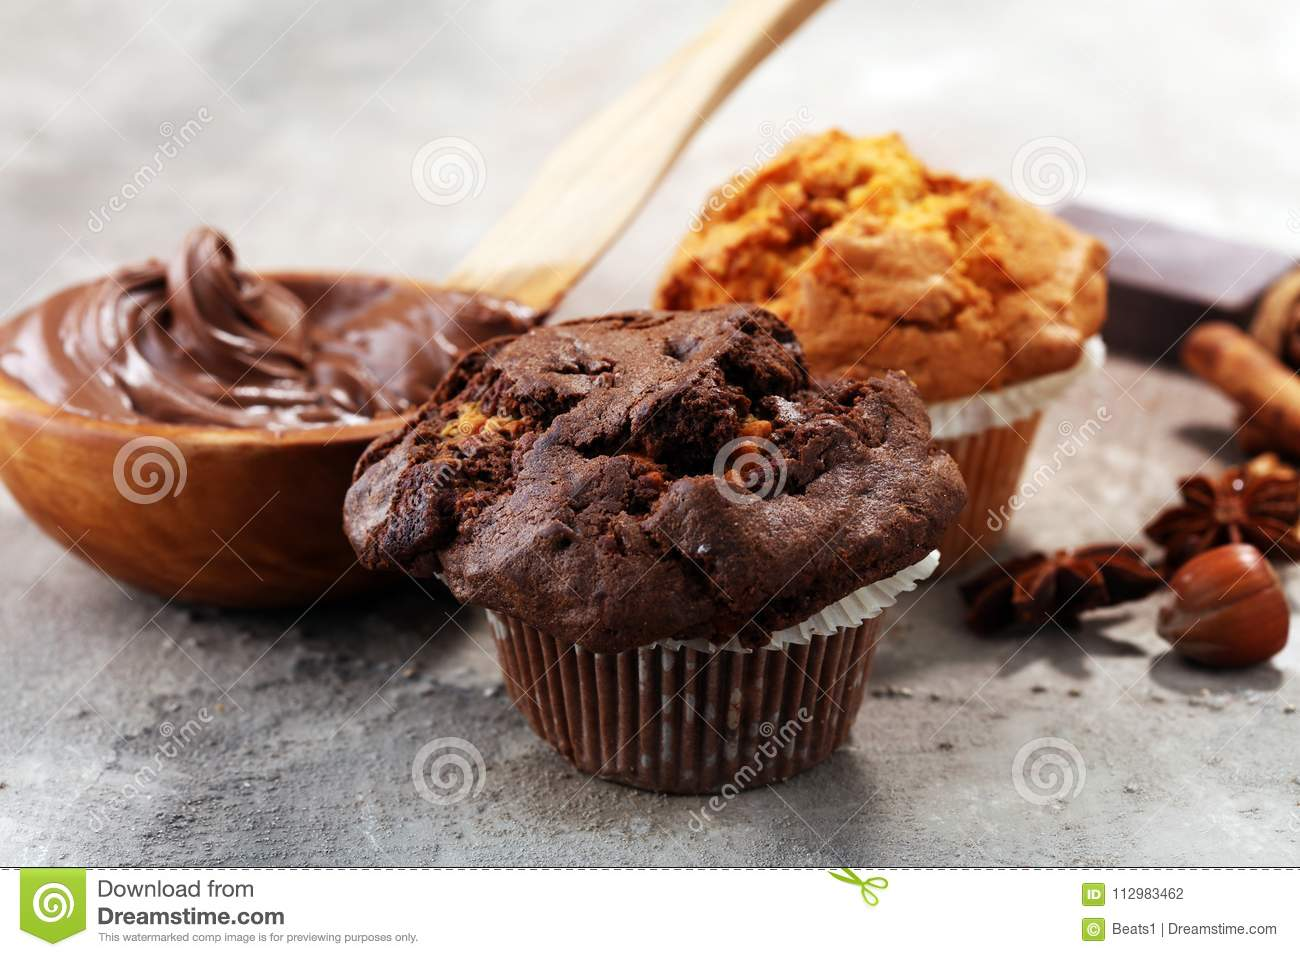 Chocolate muffin and nut muffin, homemade bakery on grey background